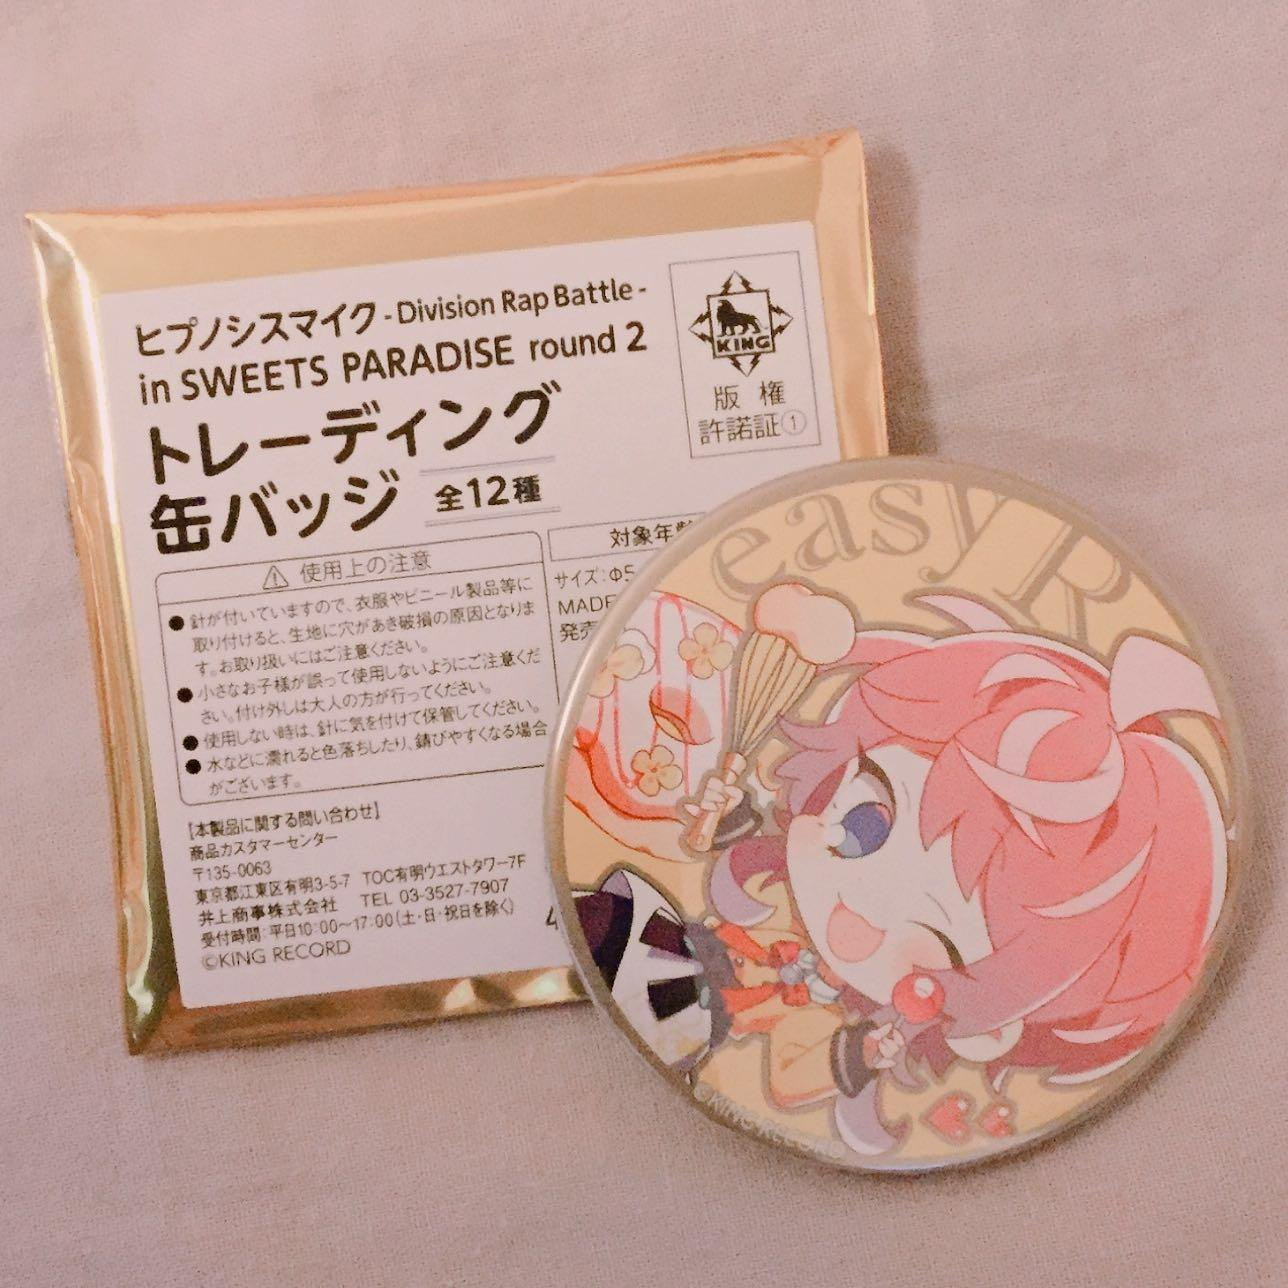 Hypmic Ramuda Badge from Sweets Paradise